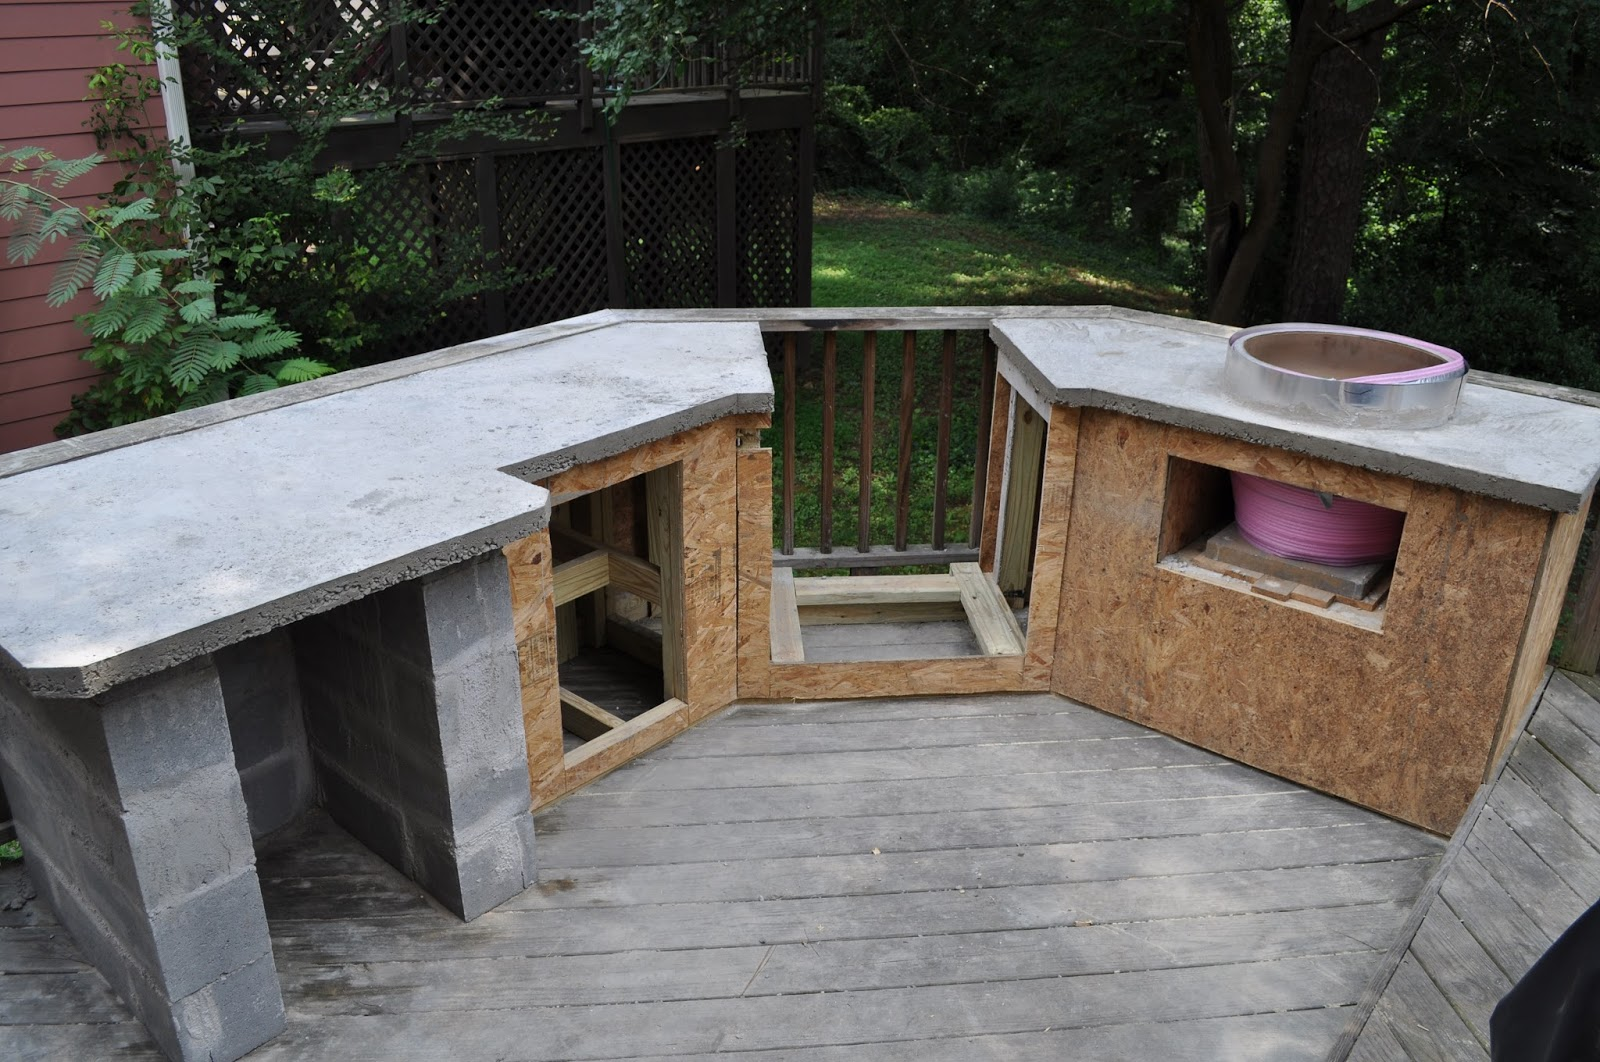 The cow spot outdoor kitchen part 2 for Building an outdoor kitchen